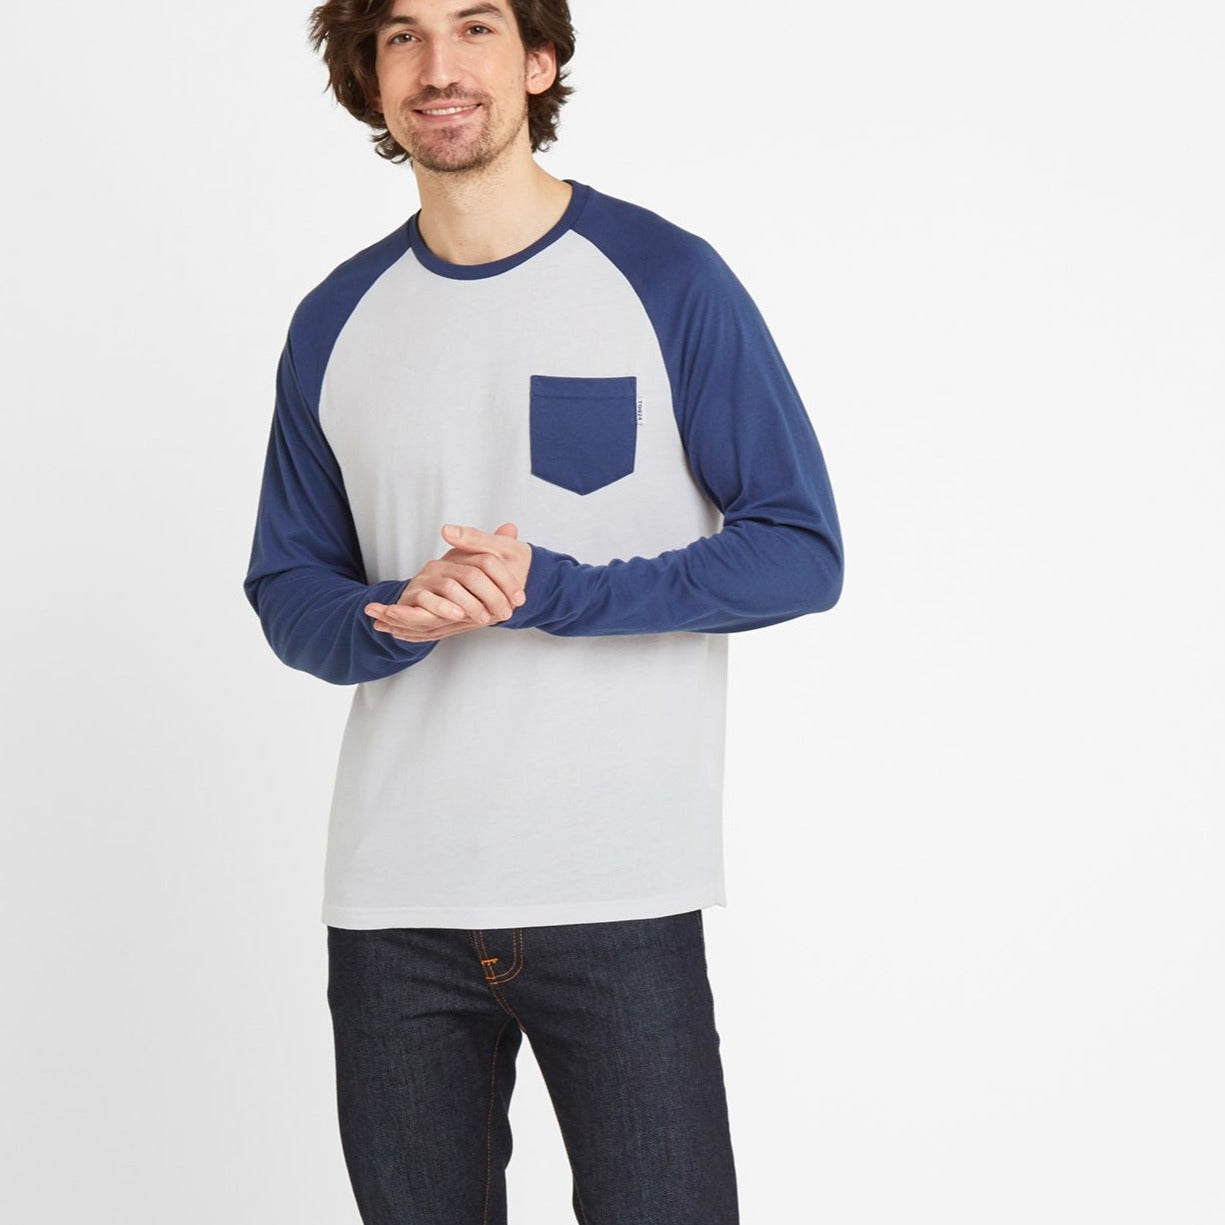 Bristow Mens Long Sleeve Raglan T-Shirt - Optic White/Denim image 4